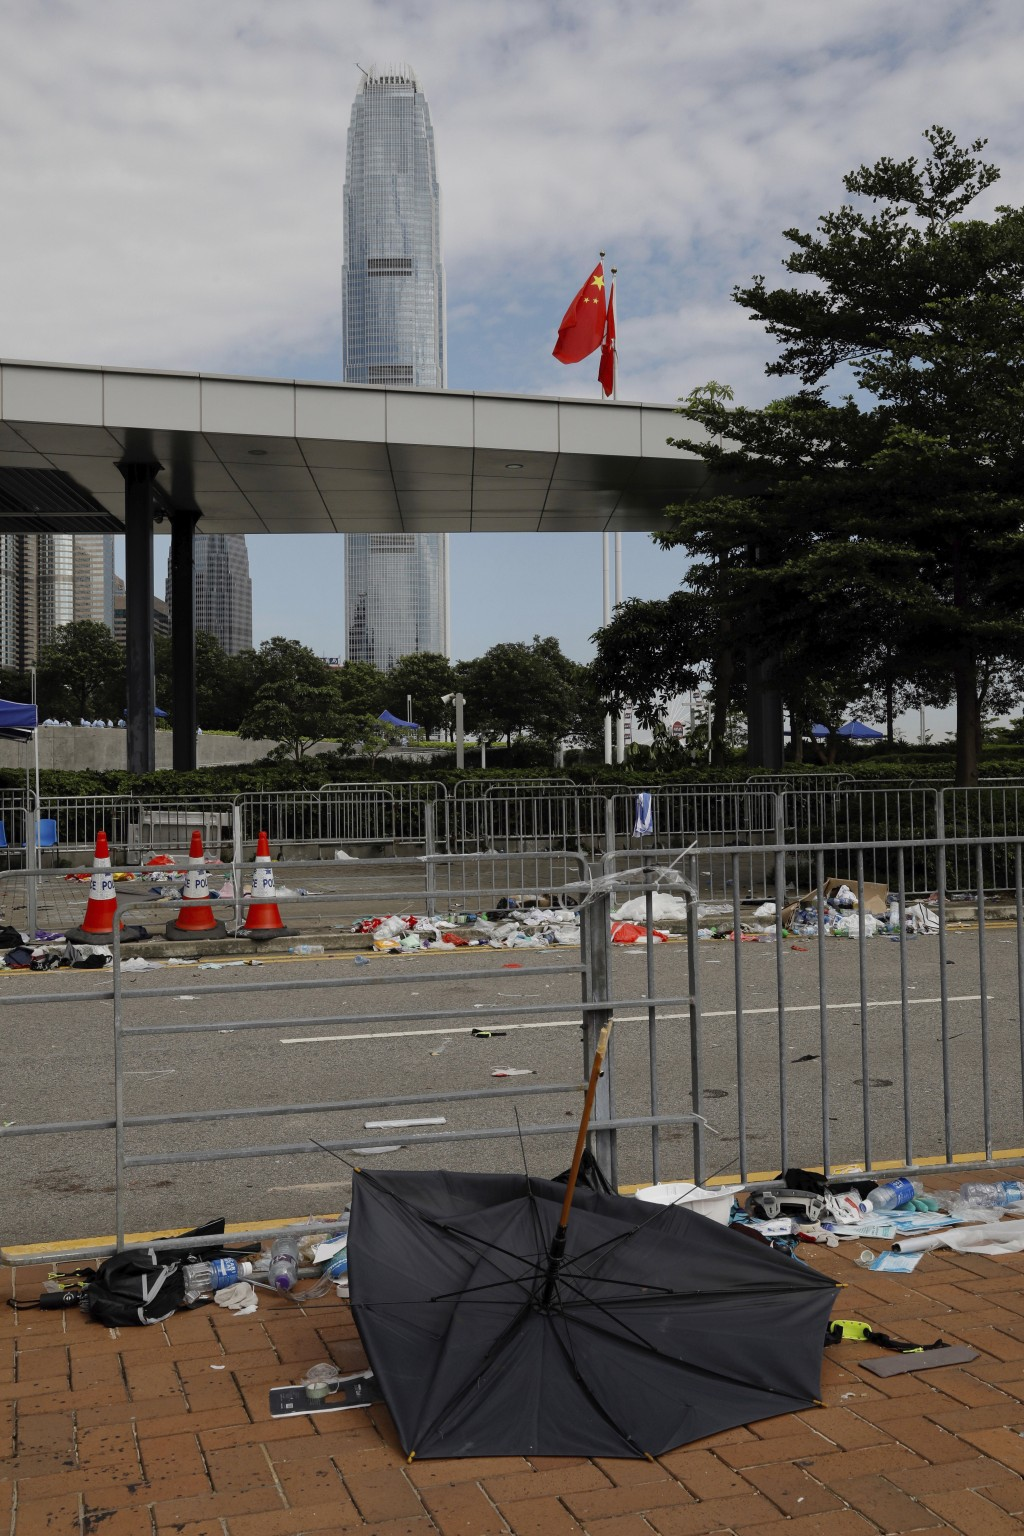 A broken umbrella left in the aftermath of Wednesday's violent protest against proposed amendments to an extradition law is seen near the Chinese flag